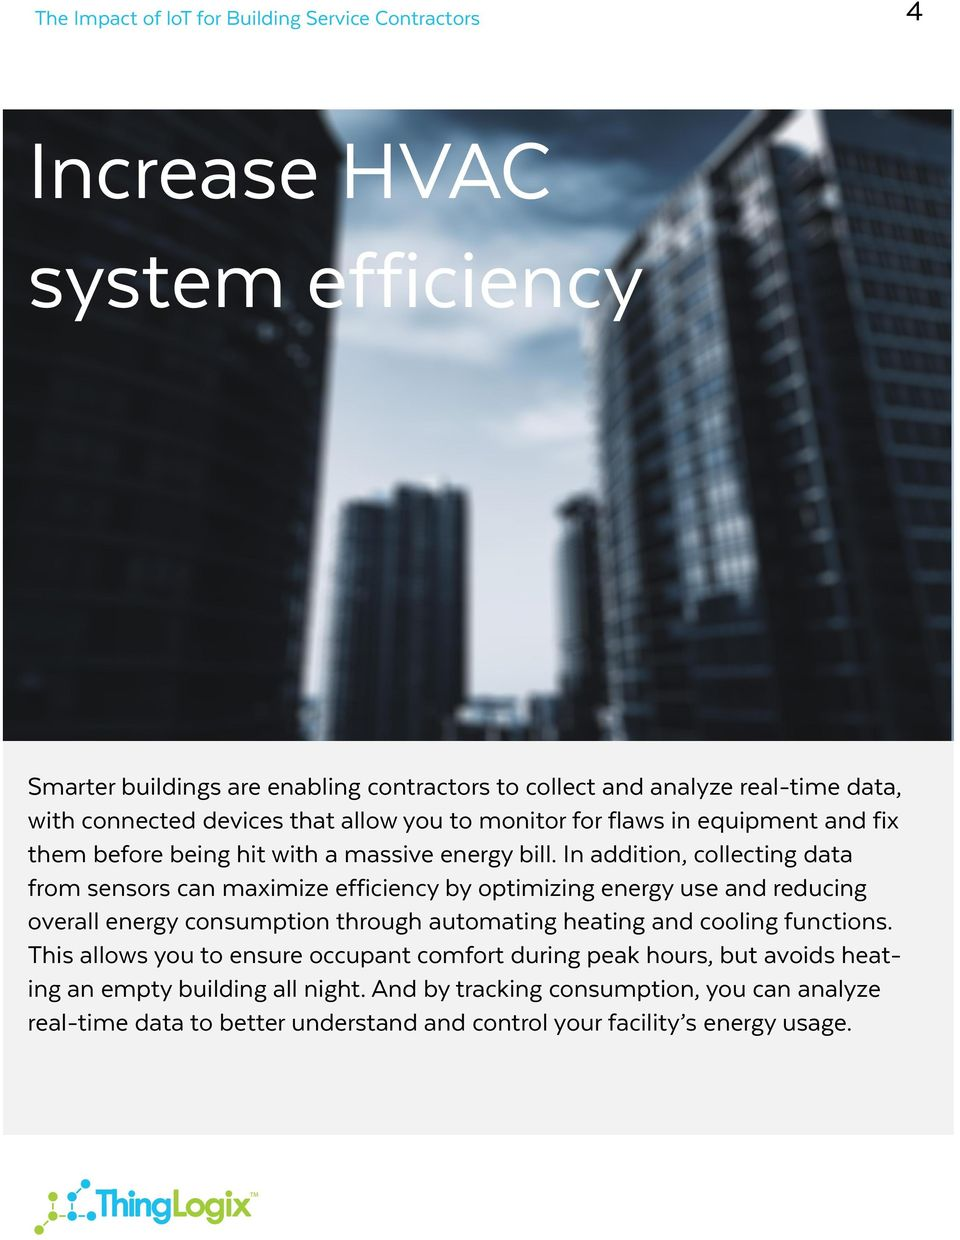 In addition, collecting data from sensors can maximize efficiency by optimizing energy use and reducing overall energy consumption through automating heating and